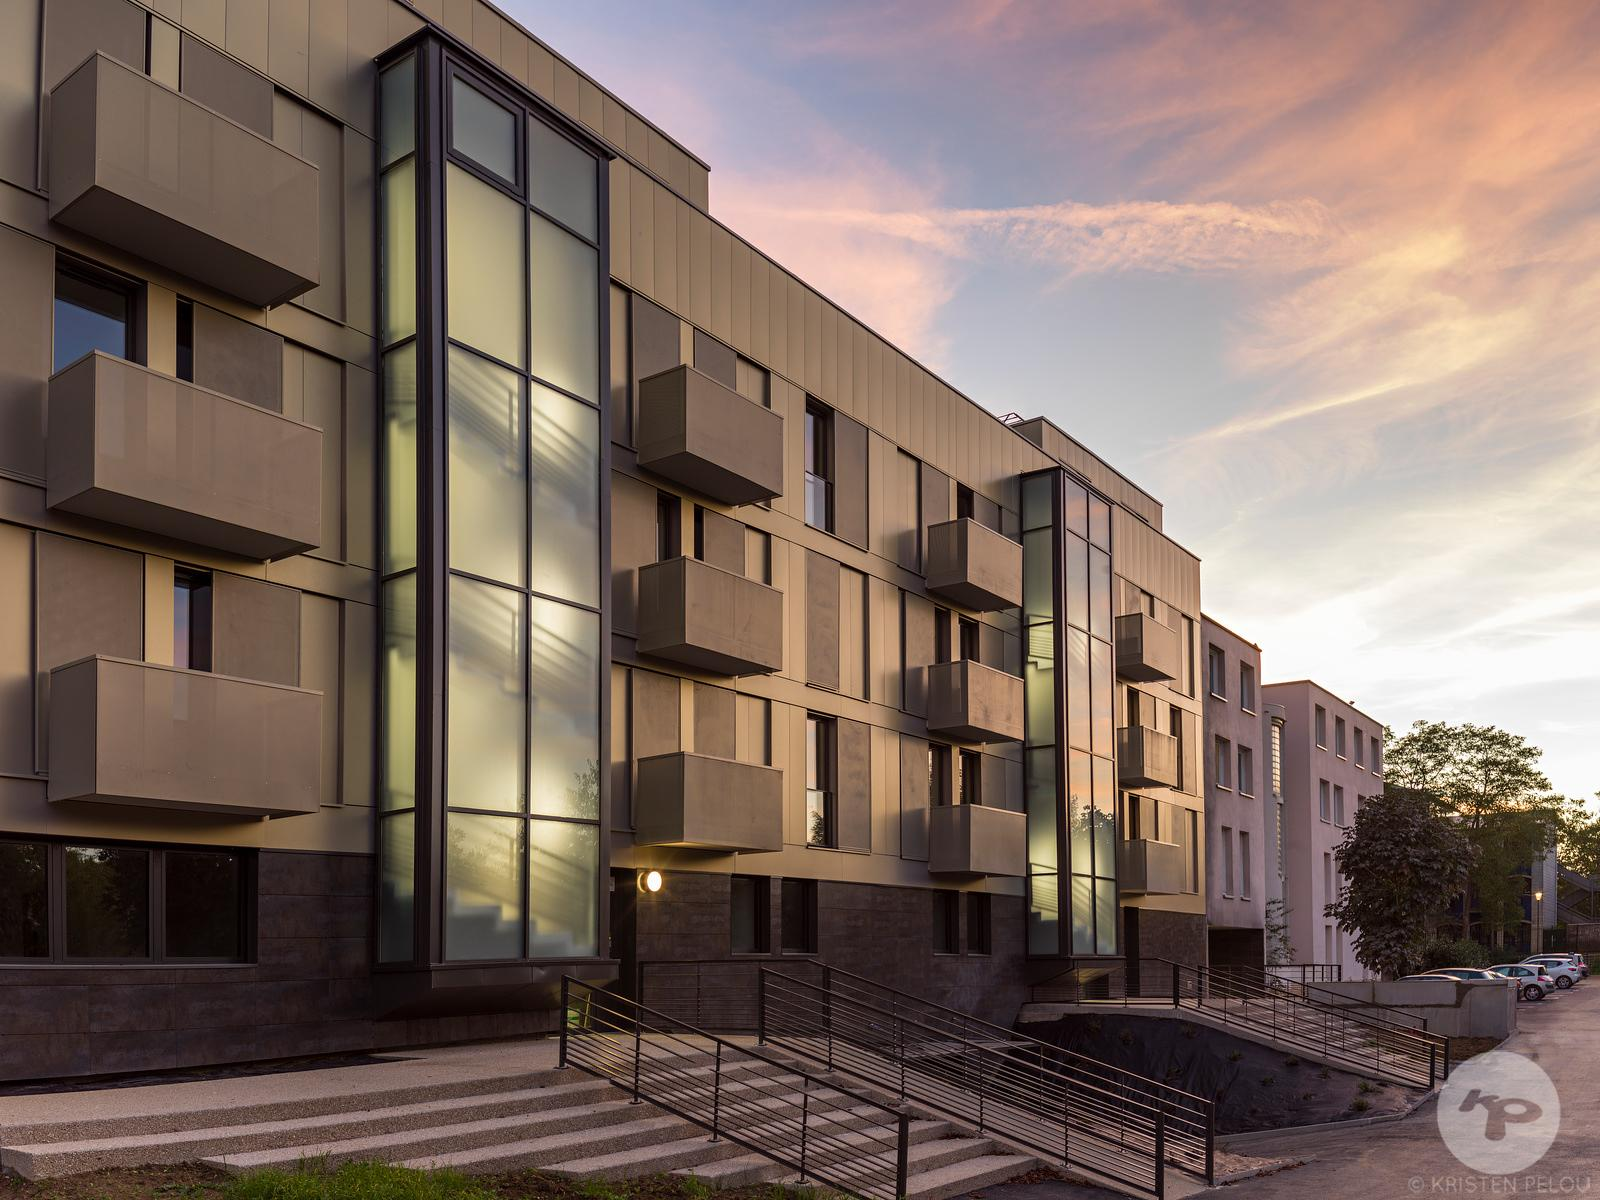 Architecture photographer Paris - Residencial building by LEMEROU architecture etc., Cergy Pontoise, France. Photo ©Kristen P...